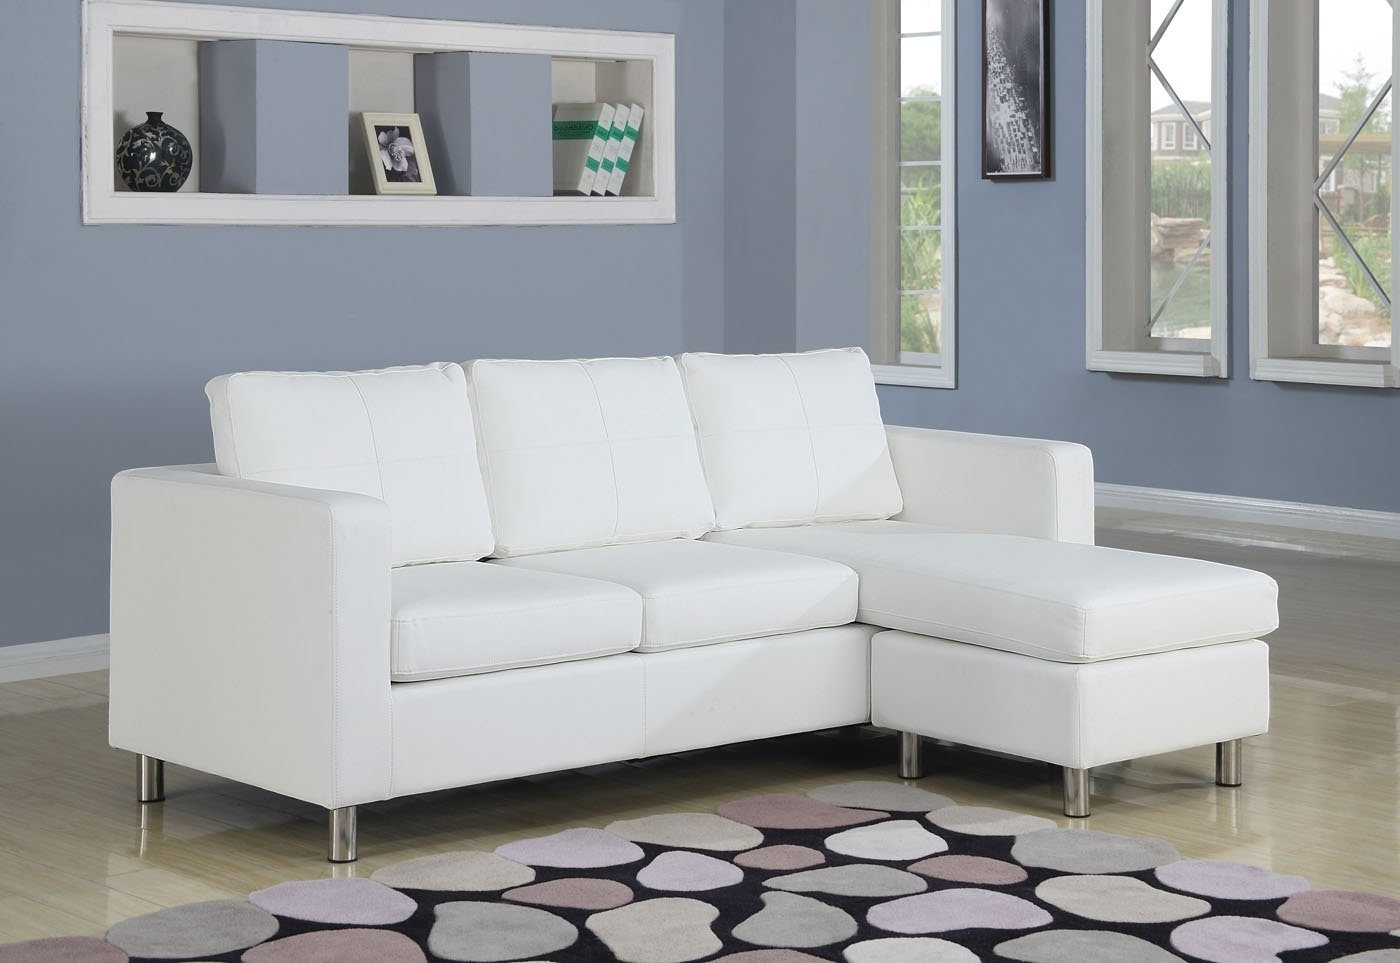 Small Sectional Sleeper Sofa Ideas